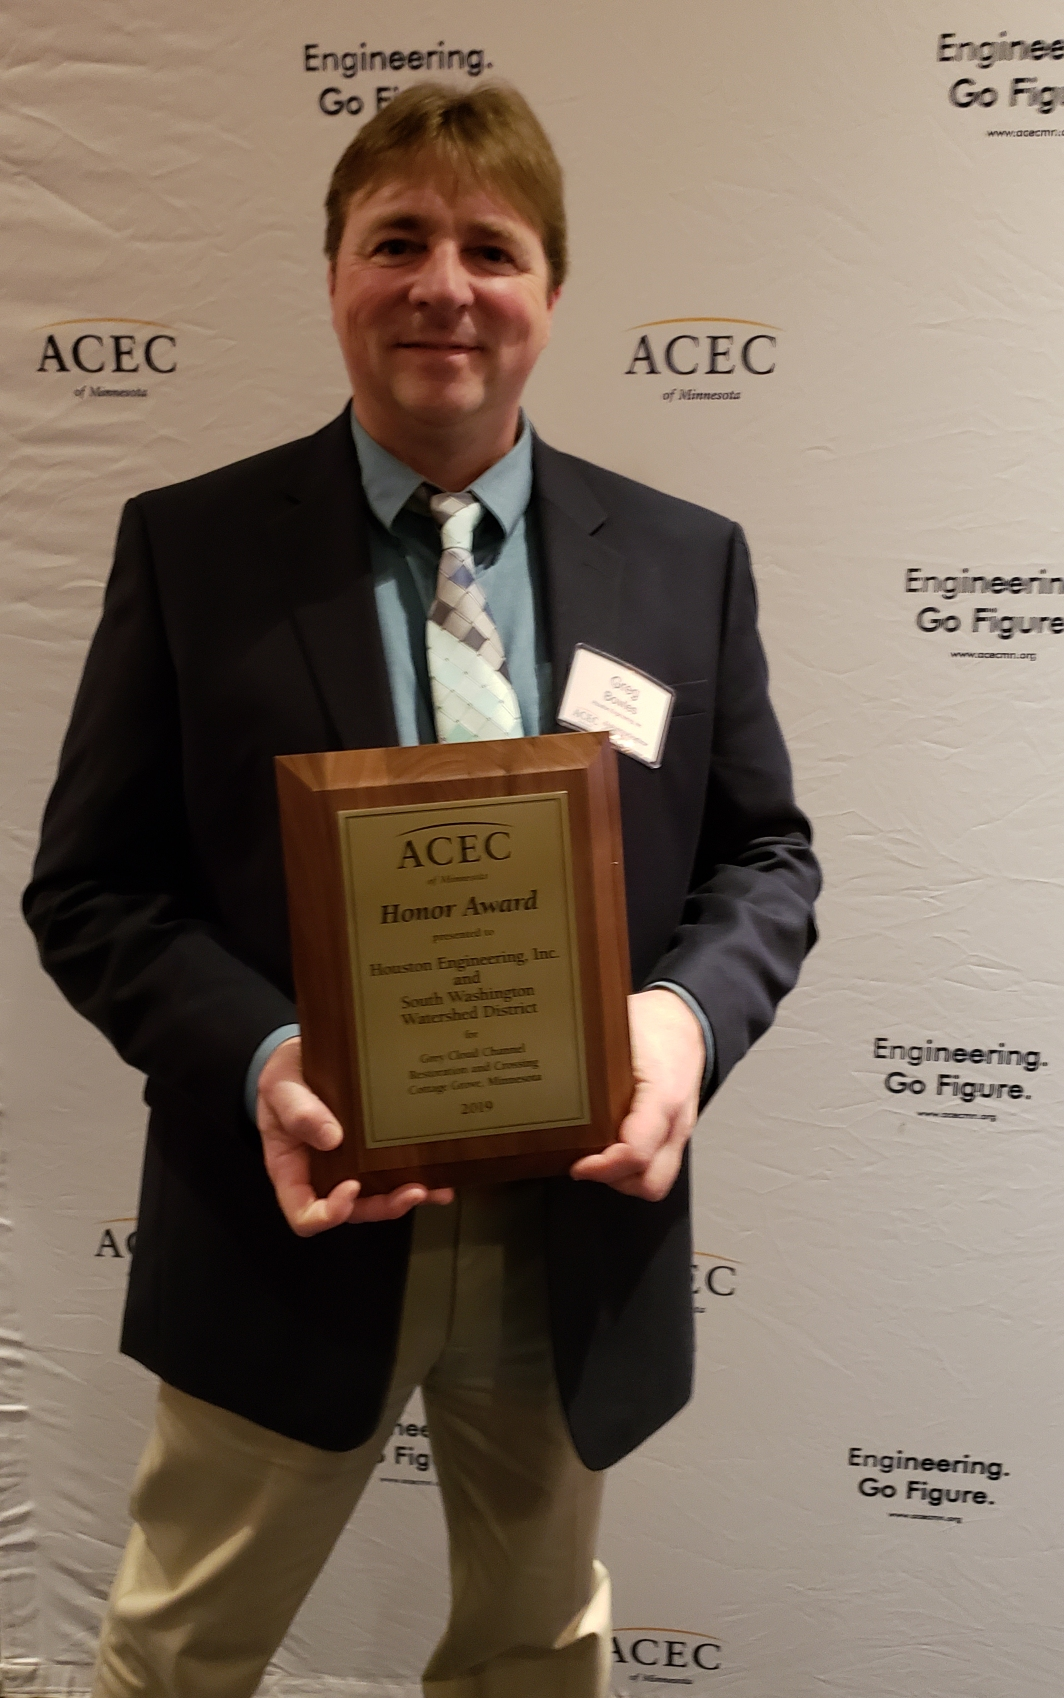 Greg Bowles at the ACEC/MN Awards Banquet